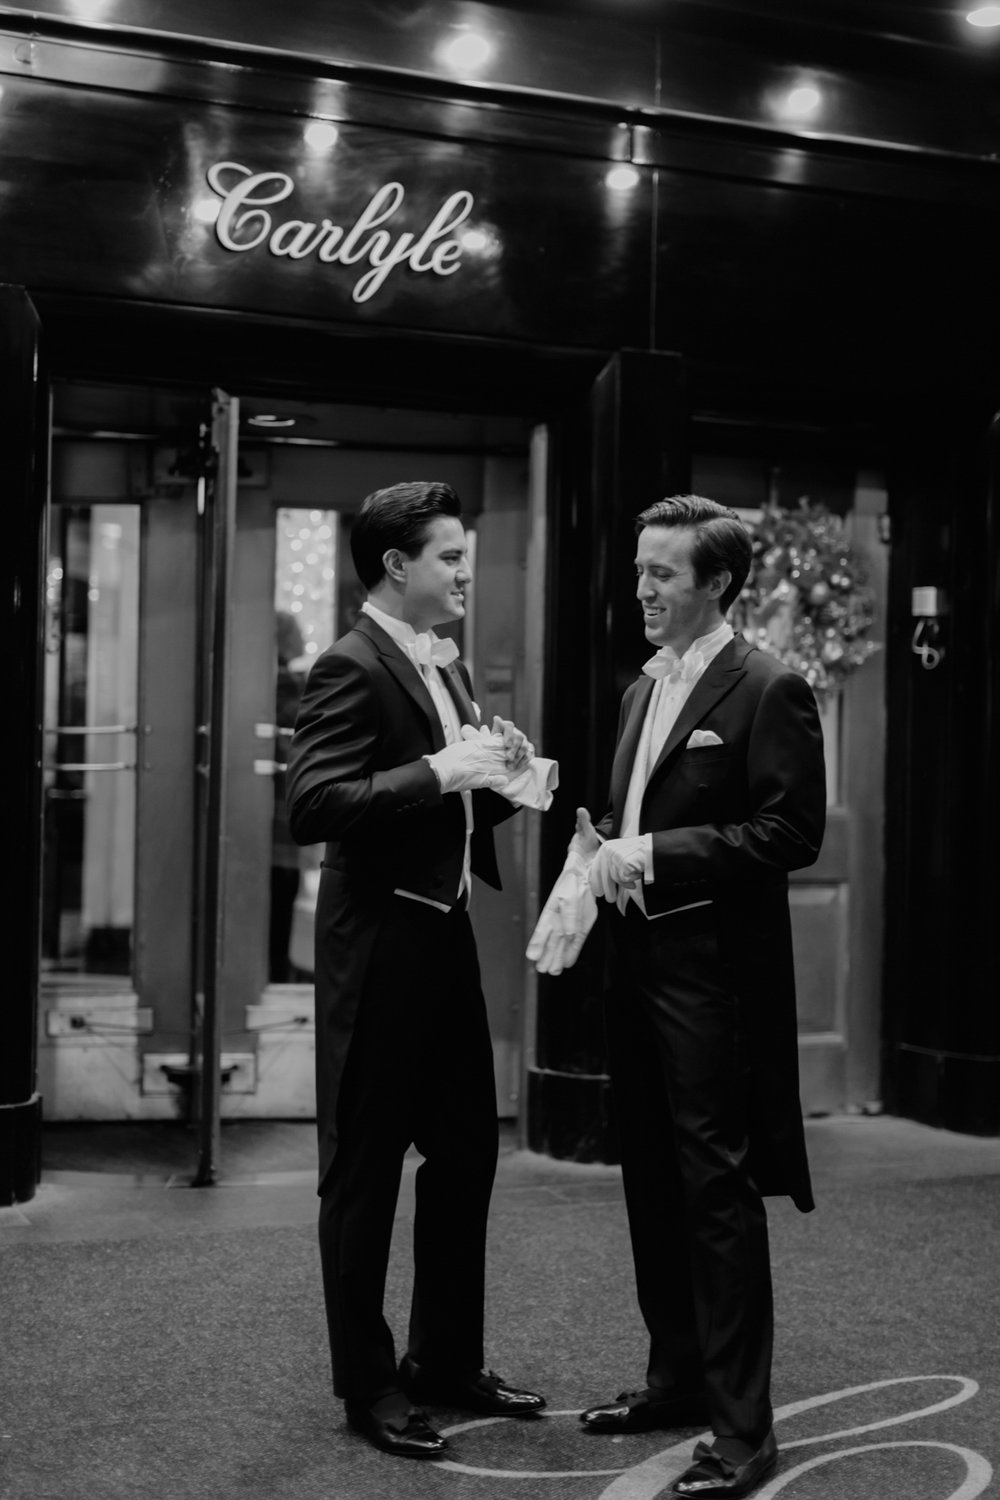 kevin + joshua | old world charm | carlyle hotel & the explorers club | manhattan